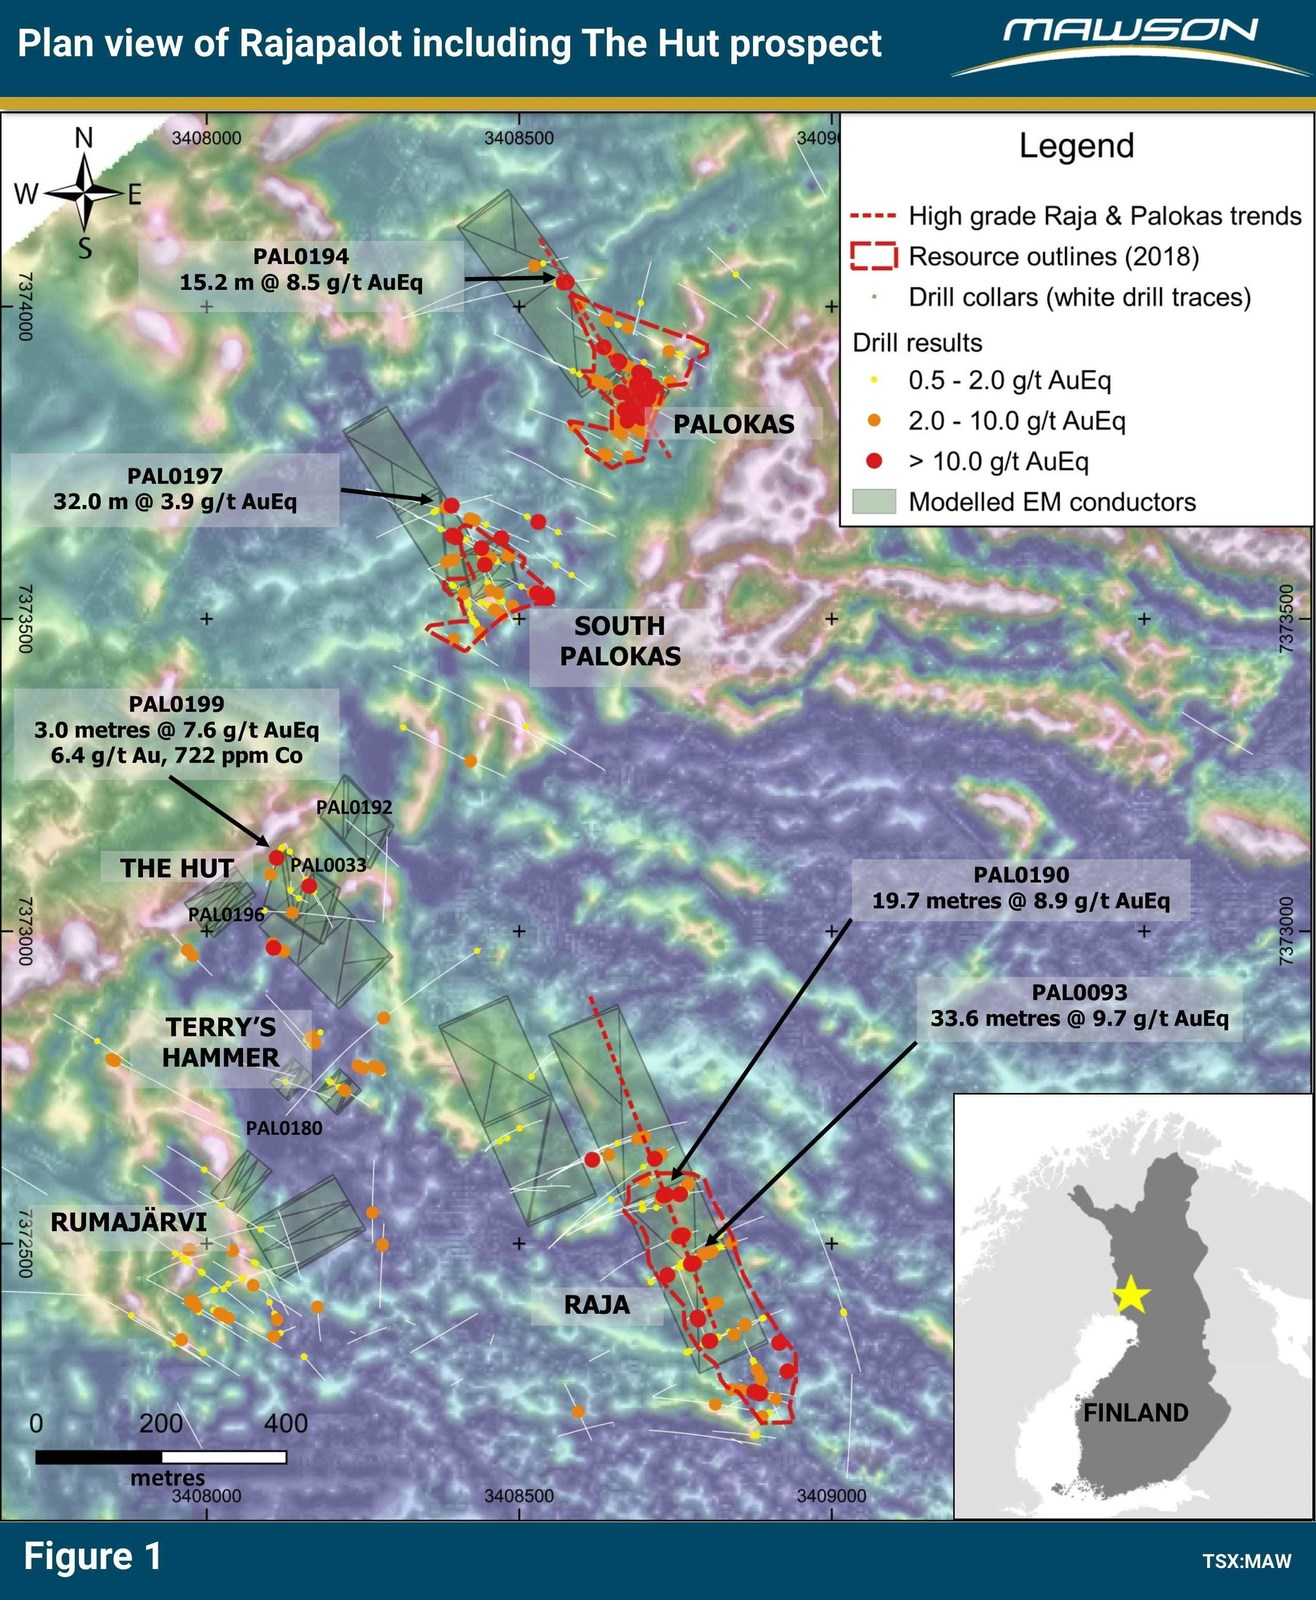 Figure 1: Plan view of Rajapalot project area including The Hut prospect area indicating drill result for PAL0199, including the outlines of 43-101 resources and modelled ground TEM plates over a ground magnetics background.